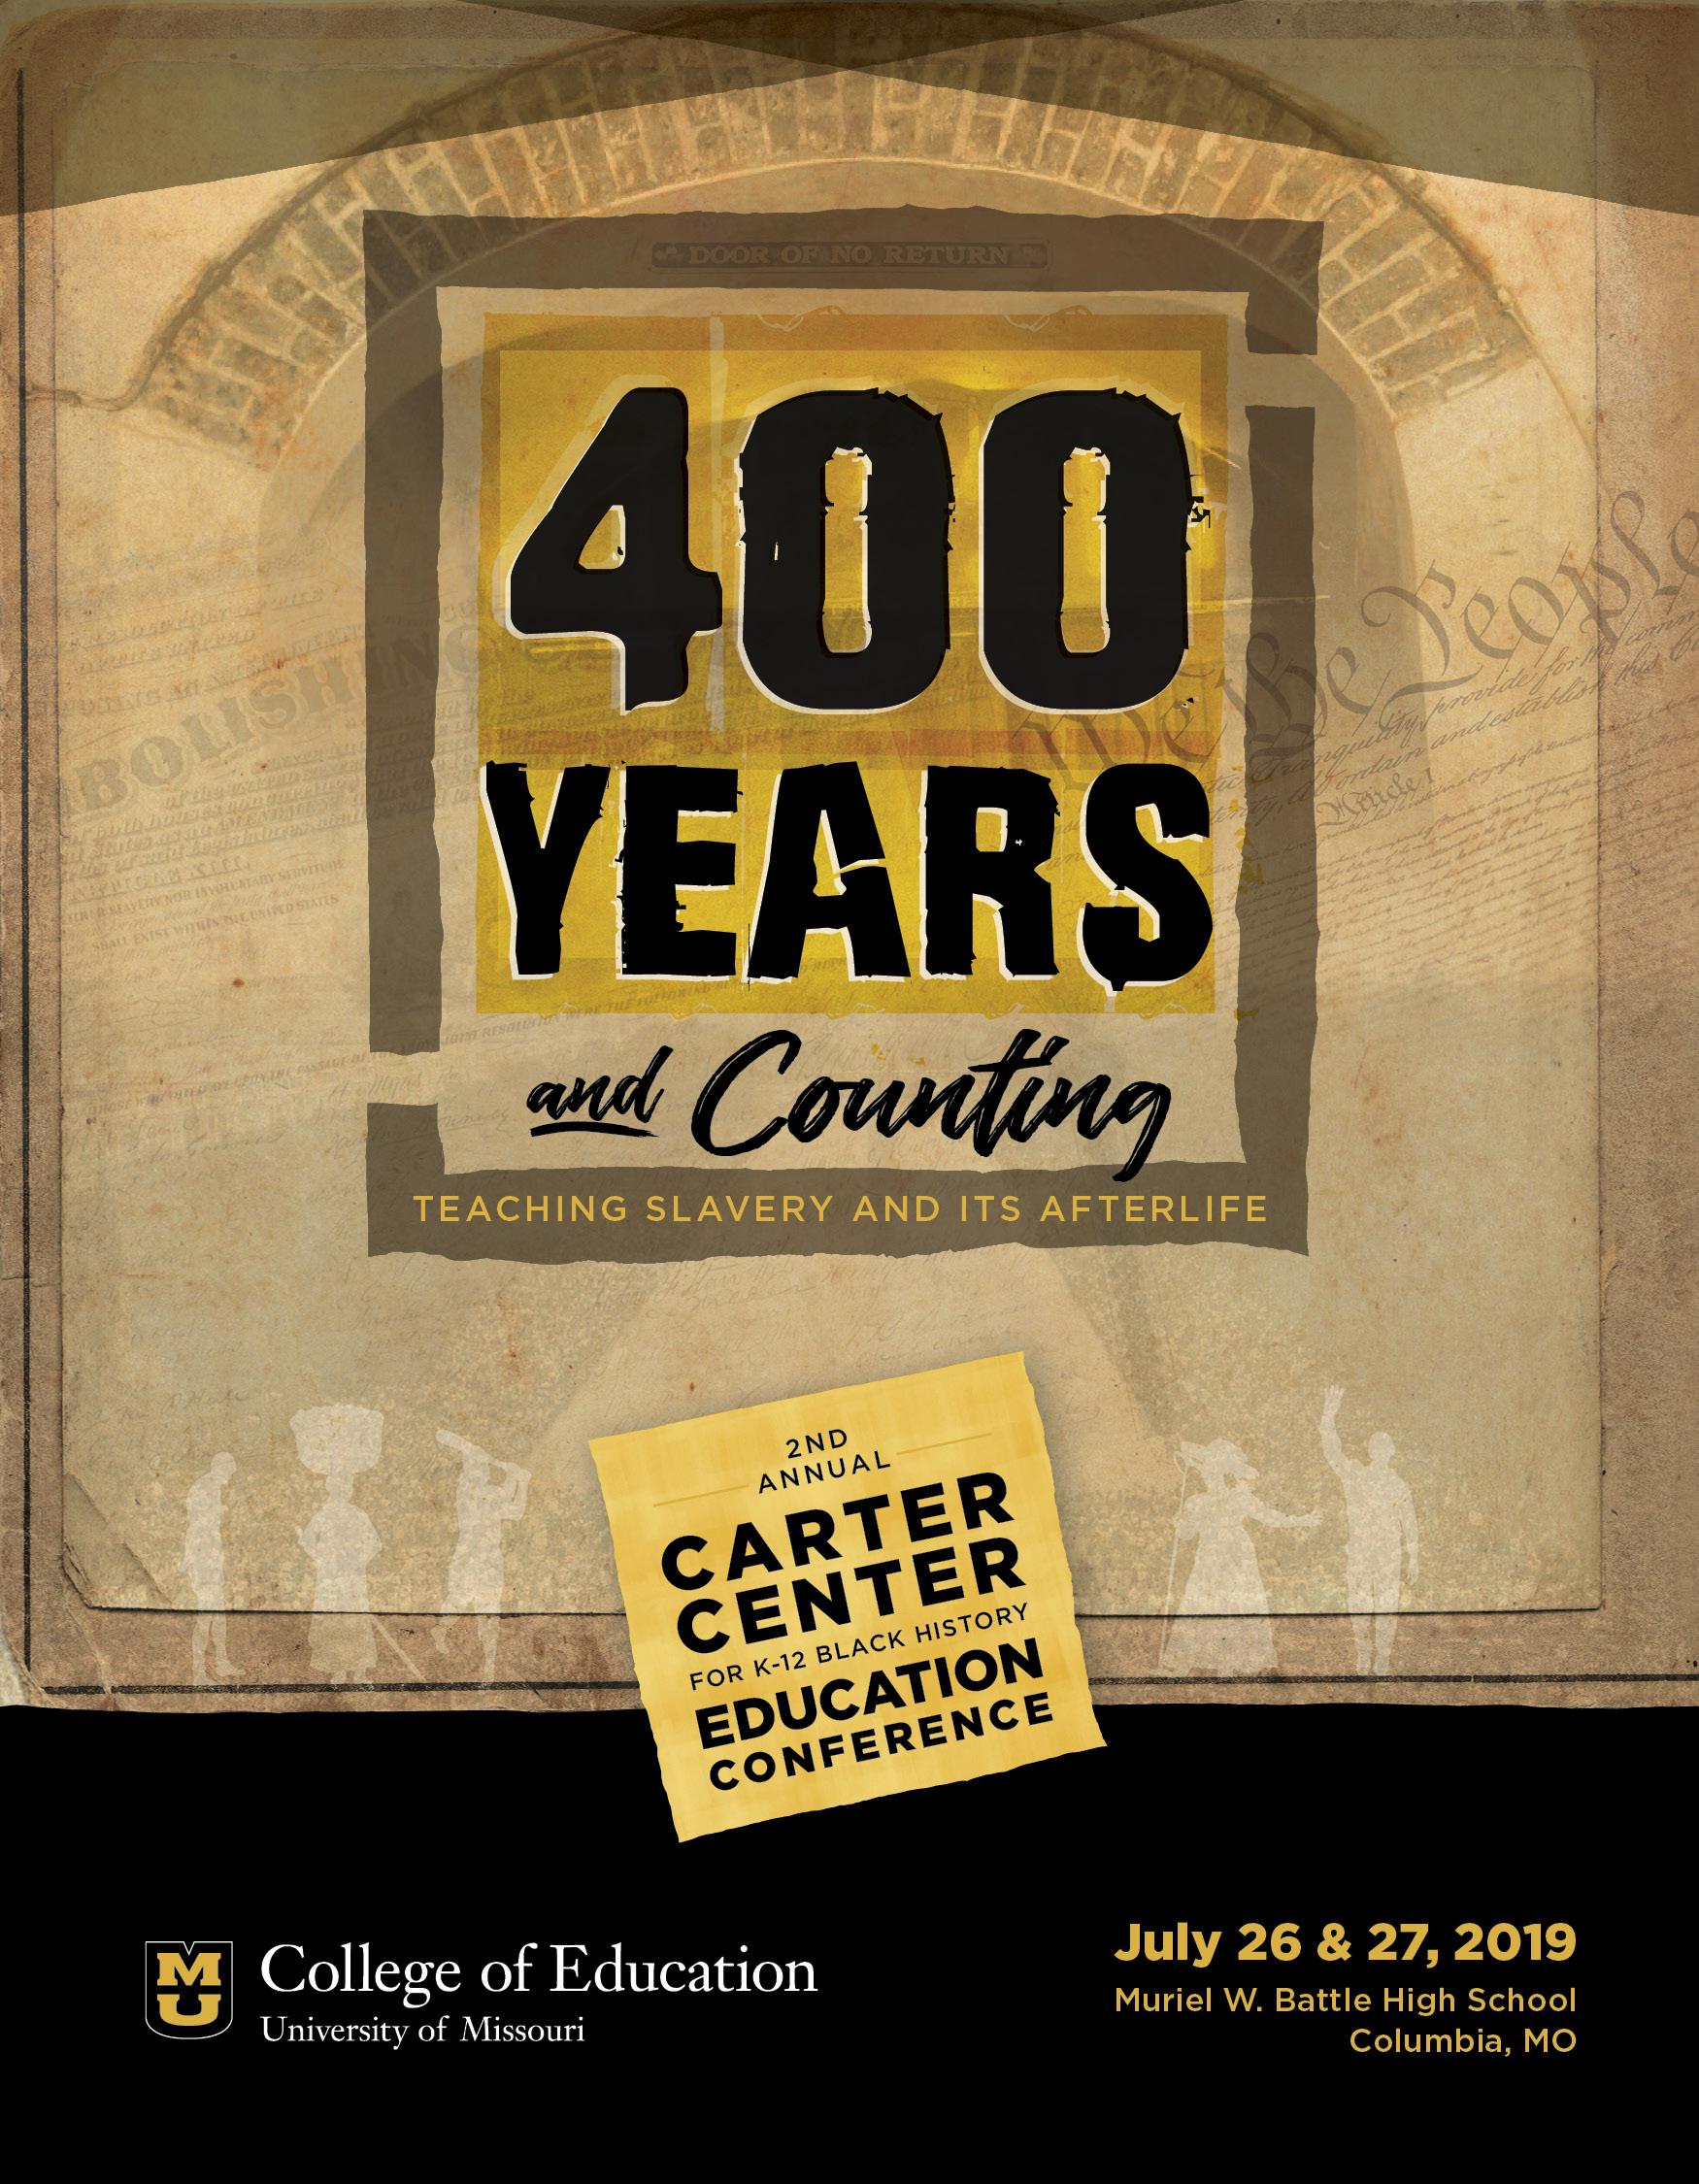 400 Years & Counting: Teaching Slavery and Its Afterlife 2nd Annual CARTER Center for K-12 Black History Education Conference, LaGarrett King, Associate Professor, University of Missouri College of Education, Department of Learning, Teaching & Curriculum